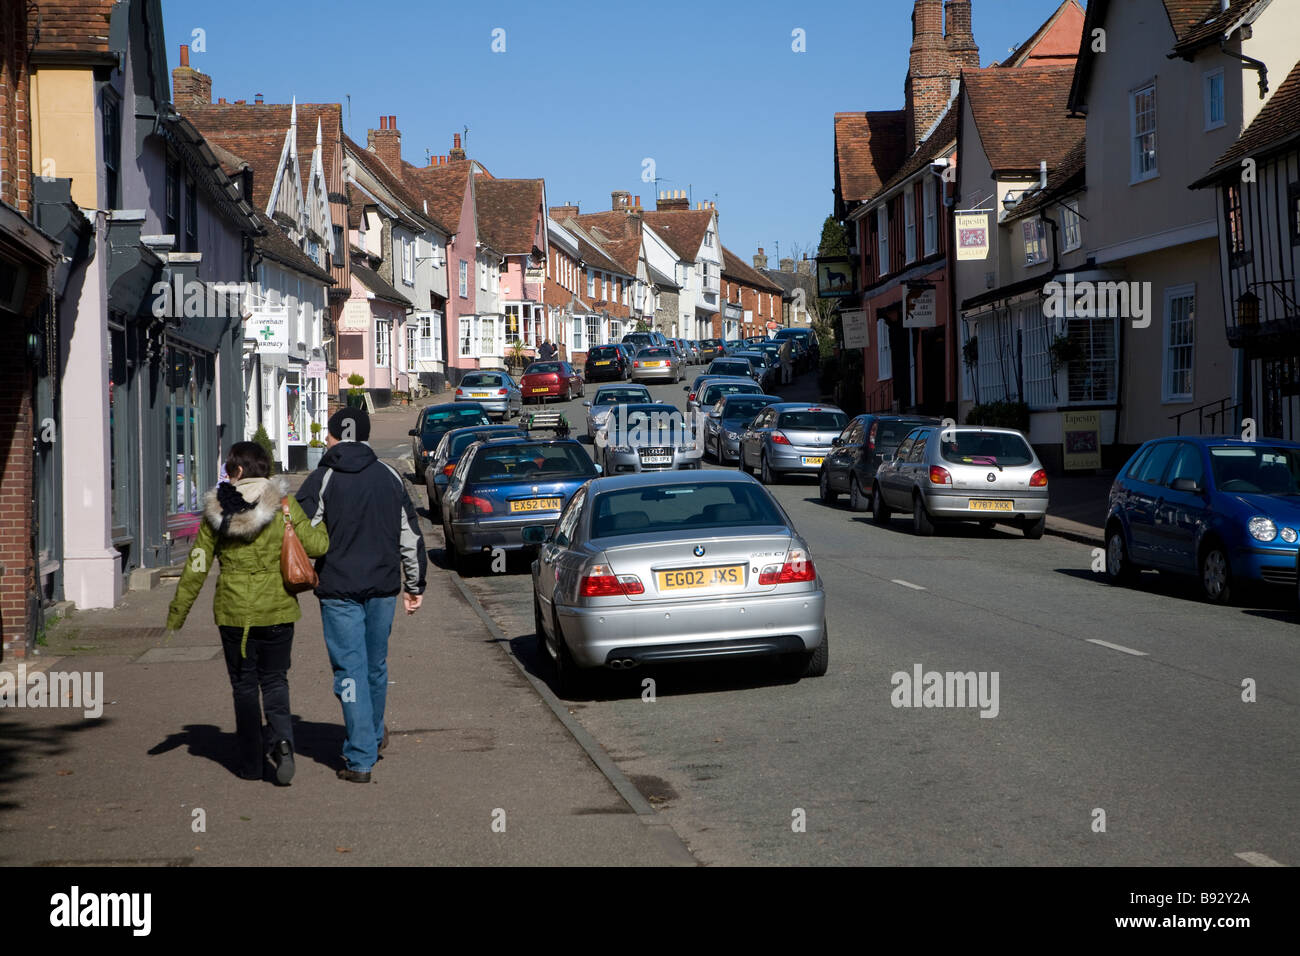 Cars and people street Lavenham Suffolk England - Stock Image